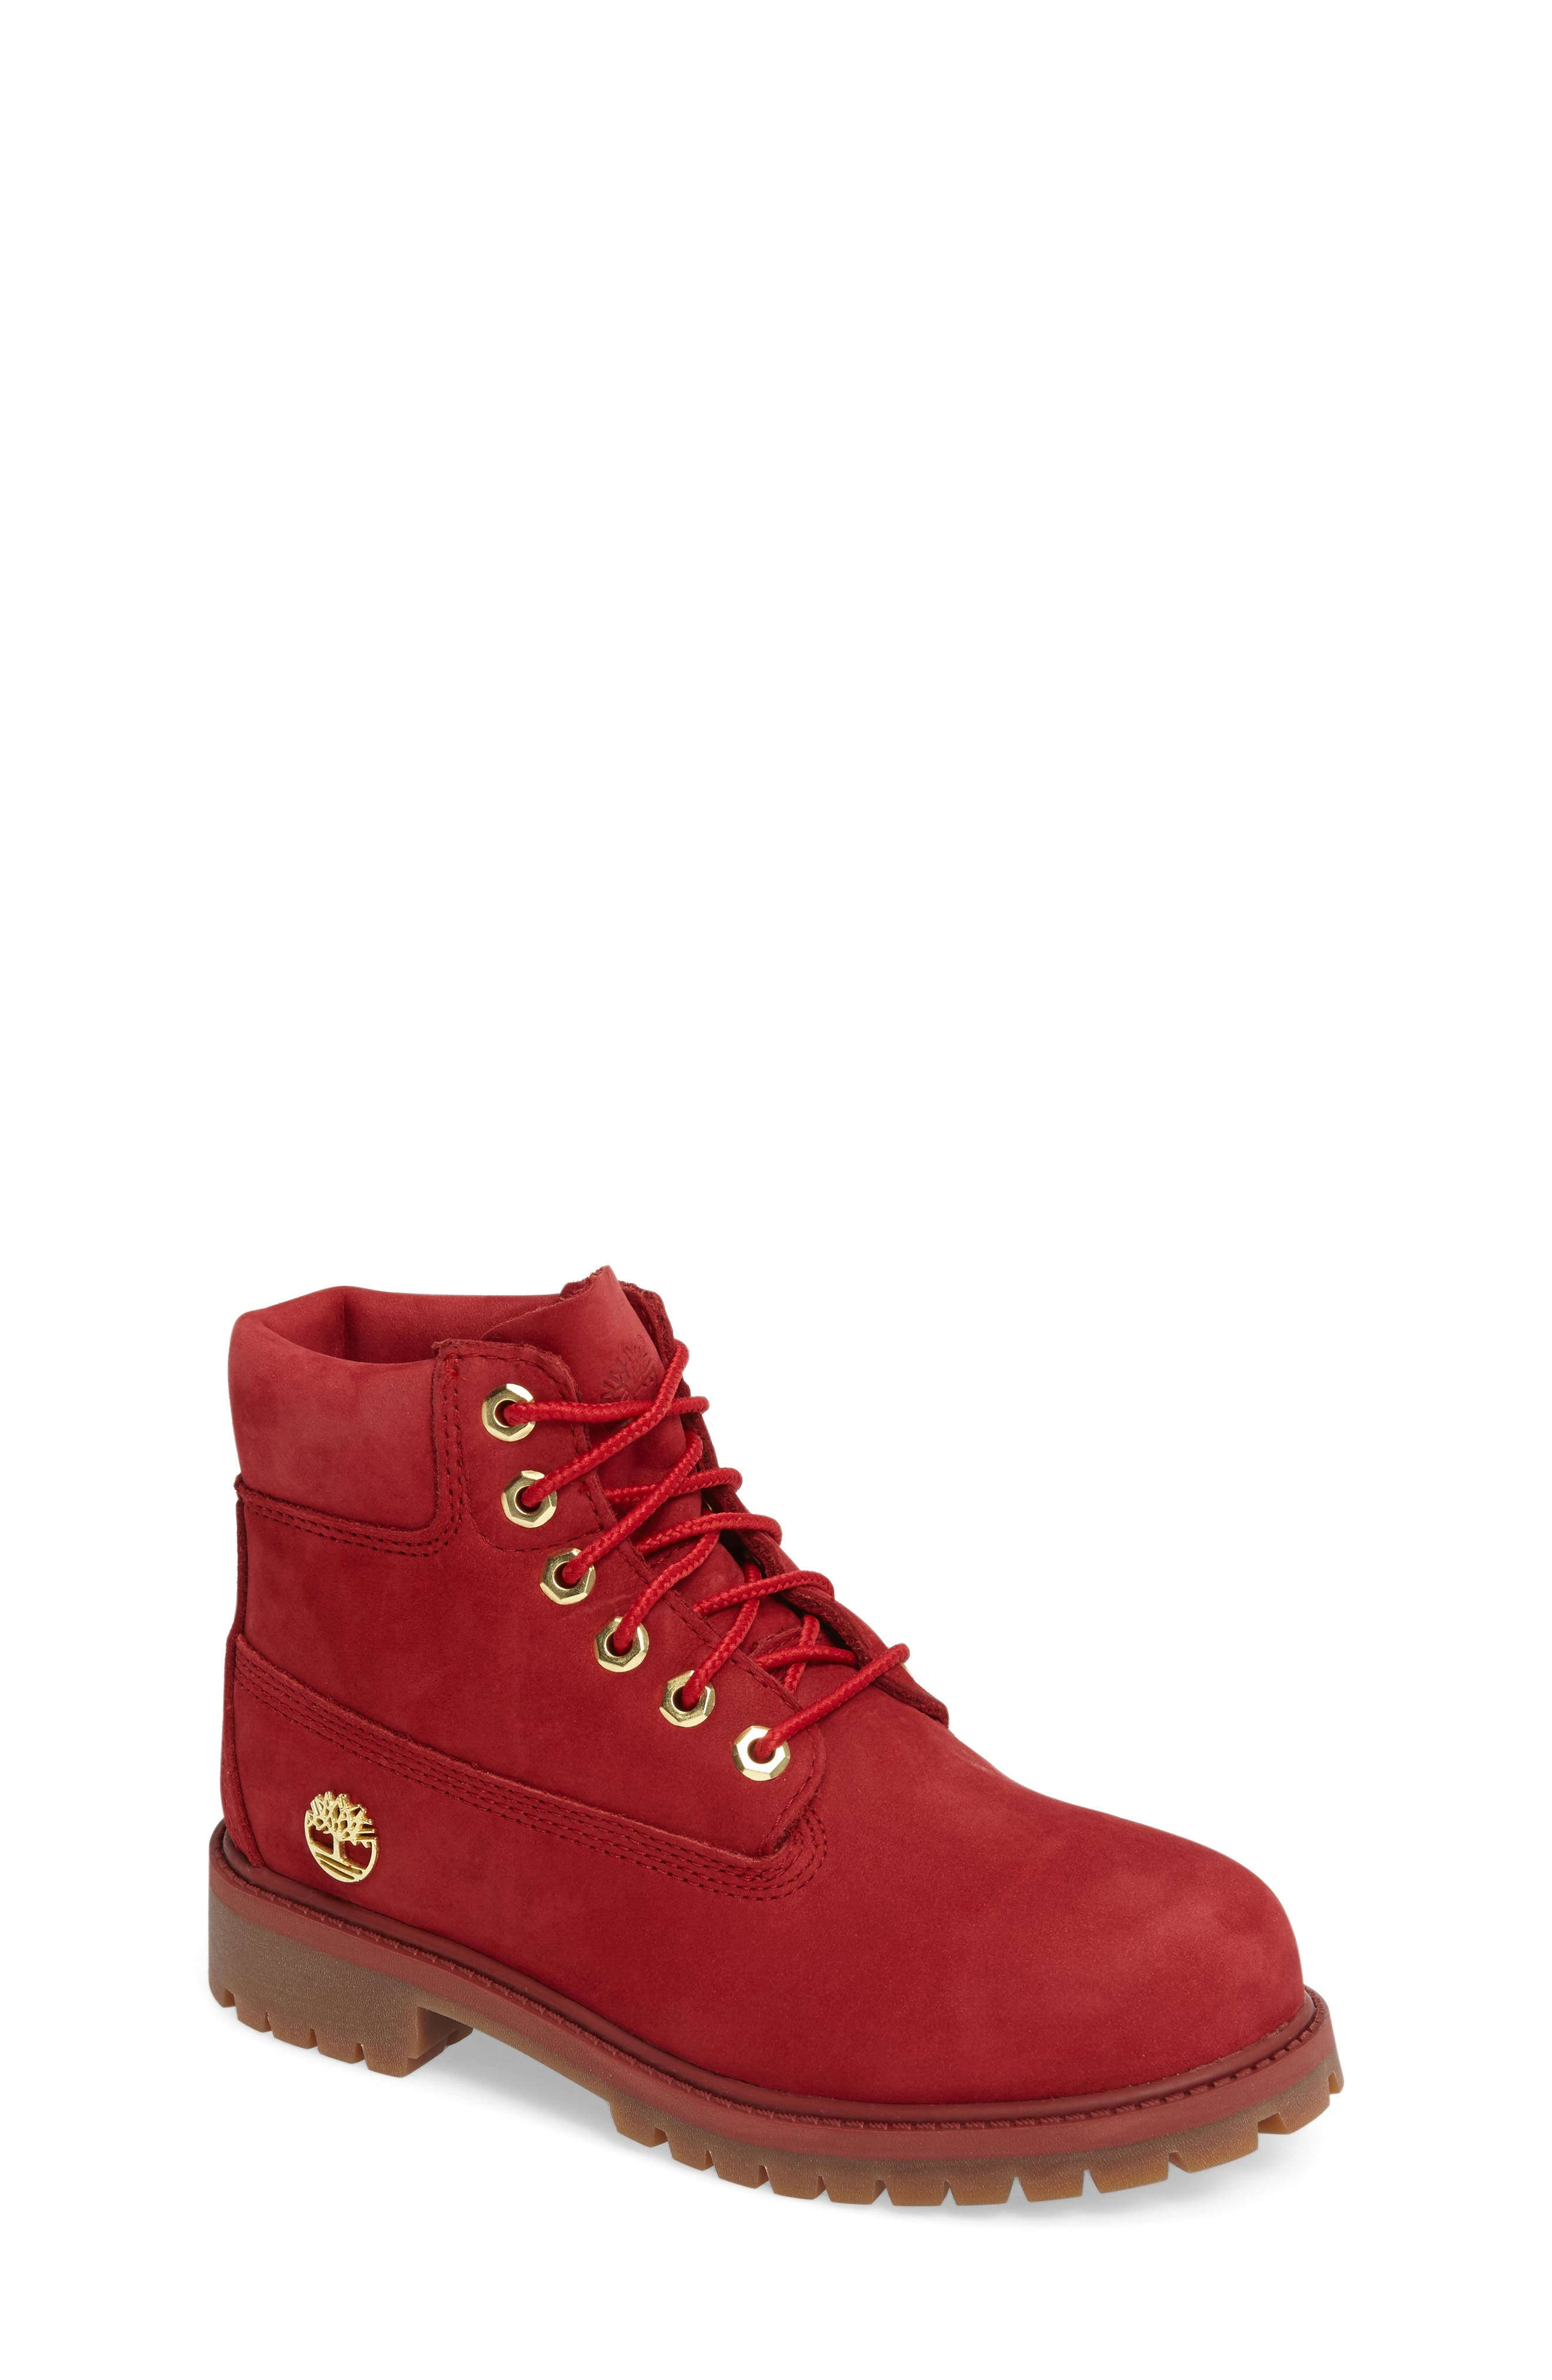 40th Anniversary Ruby Red Waterproof Boot,                             Main thumbnail 1, color,                             601